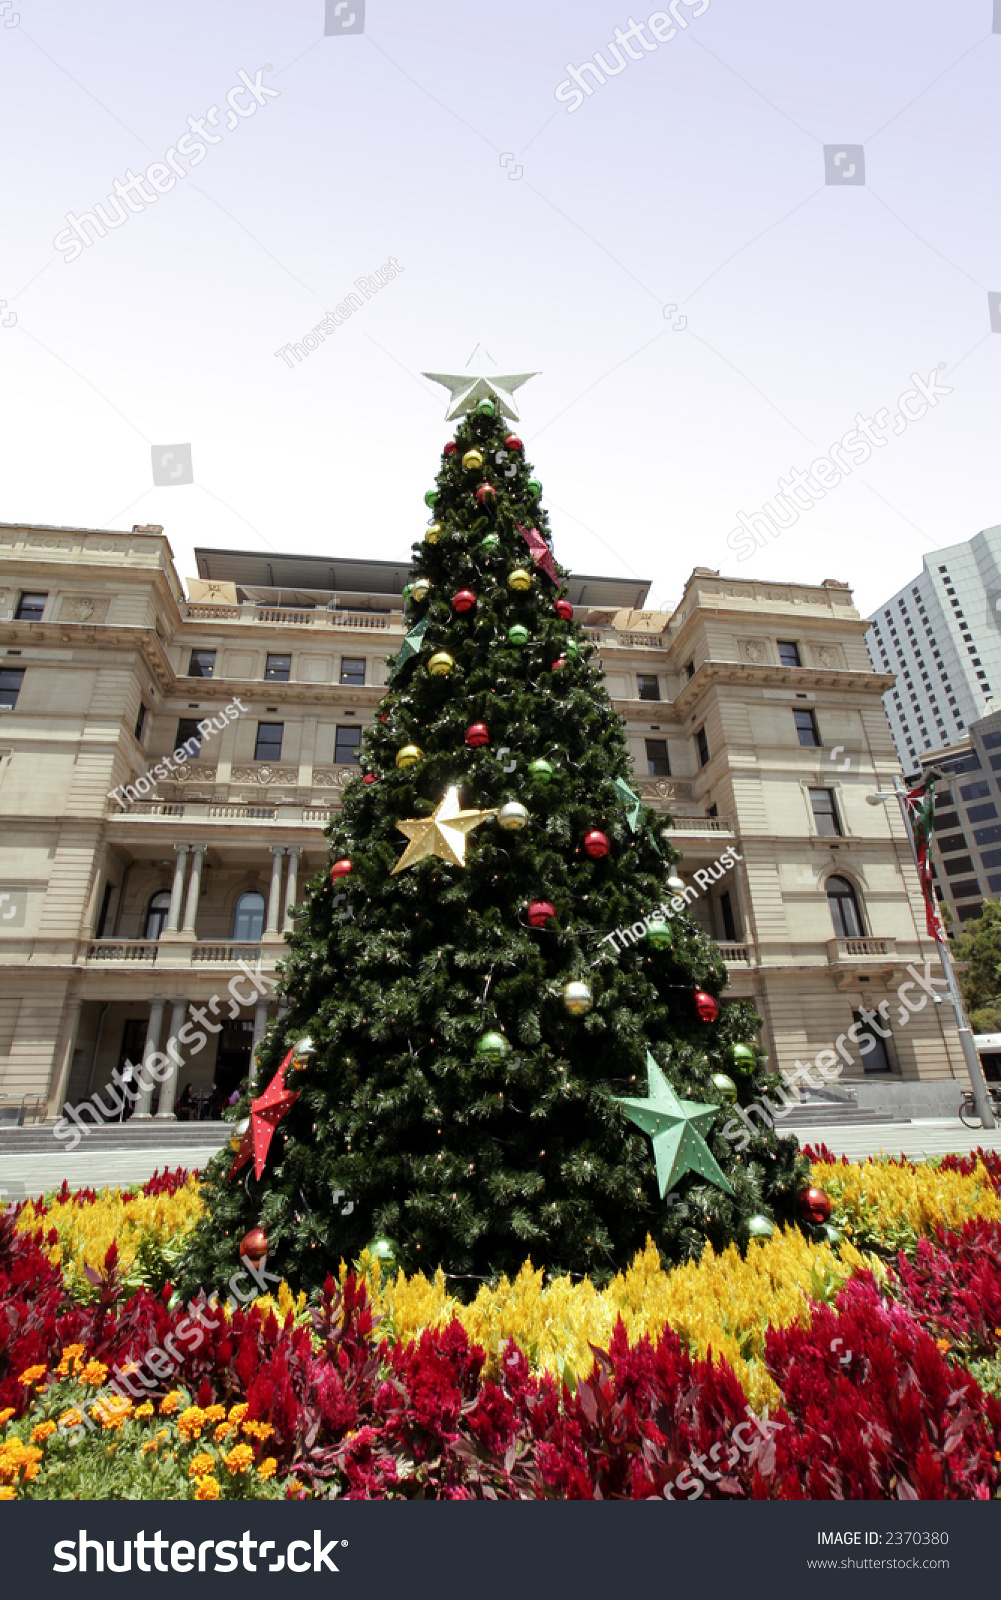 How to decorate tall outdoor christmas tree - Tall Outdoor Christmas Tree With Decoration Summer In Sydney Australia Preview Save To A Lightbox